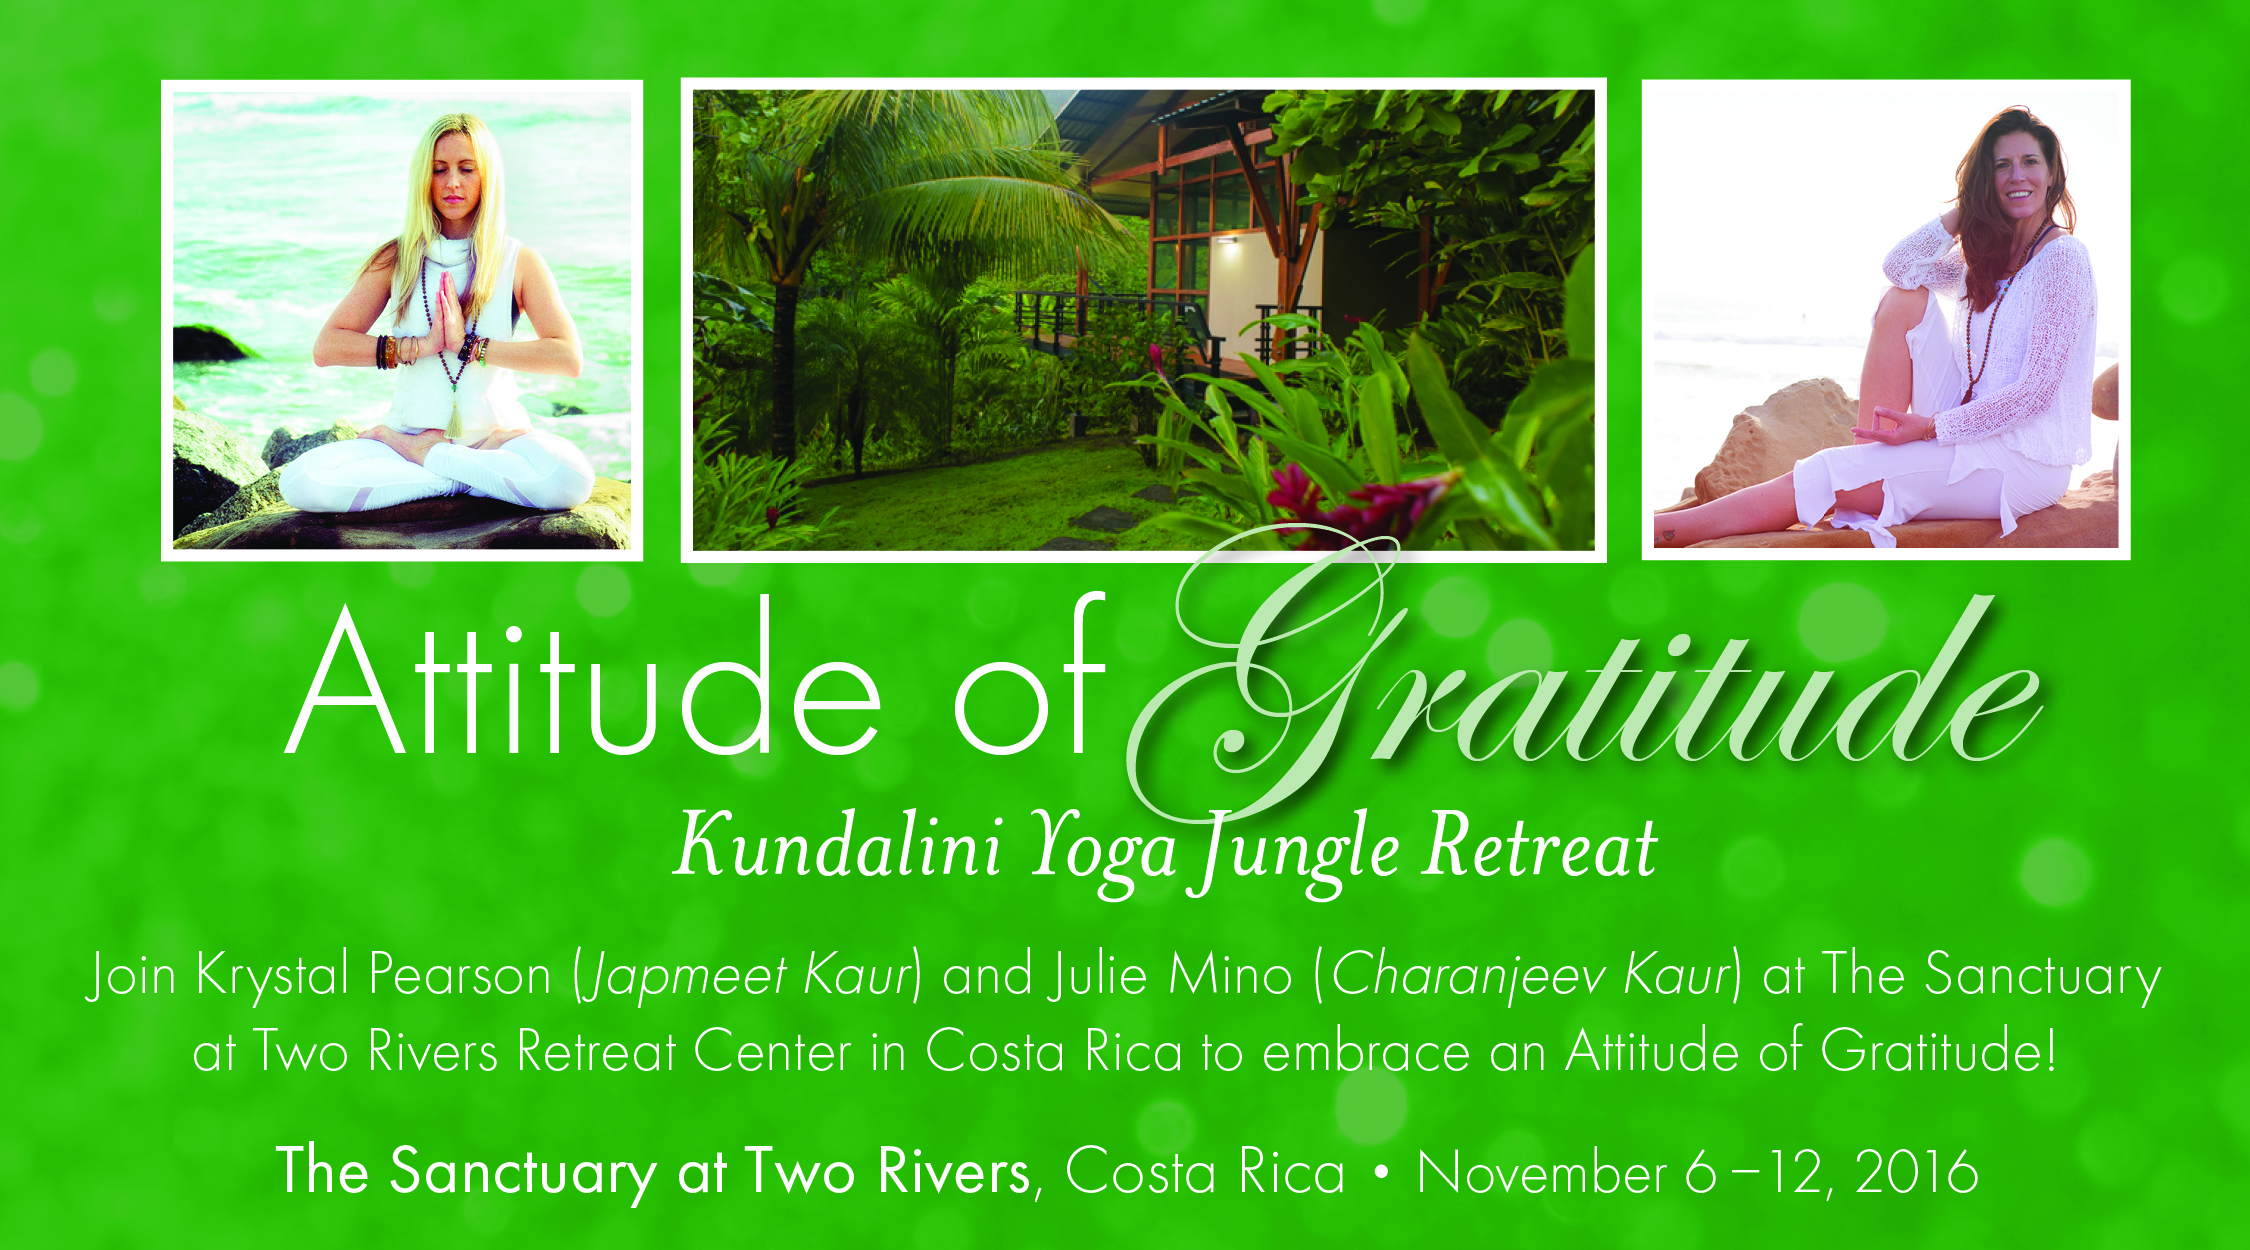 kundalini yoga retreat costa rica november 2016